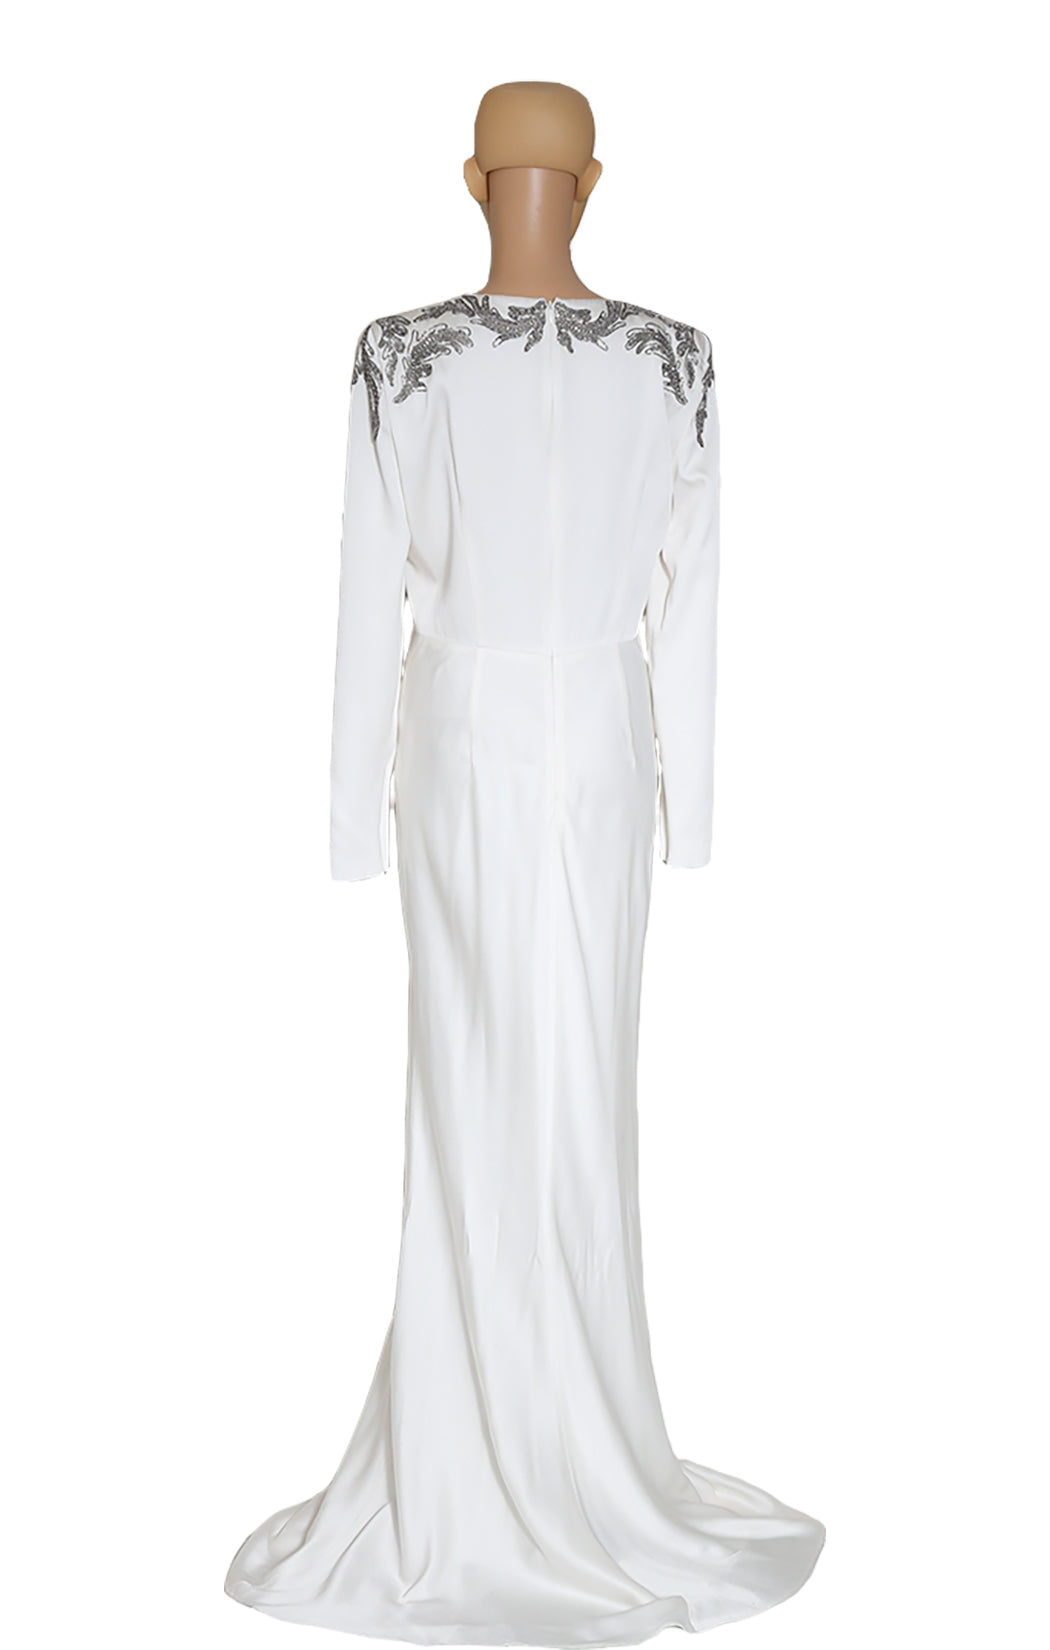 Back view of ALEXANDER McQUEEN Long White Beaded Dress